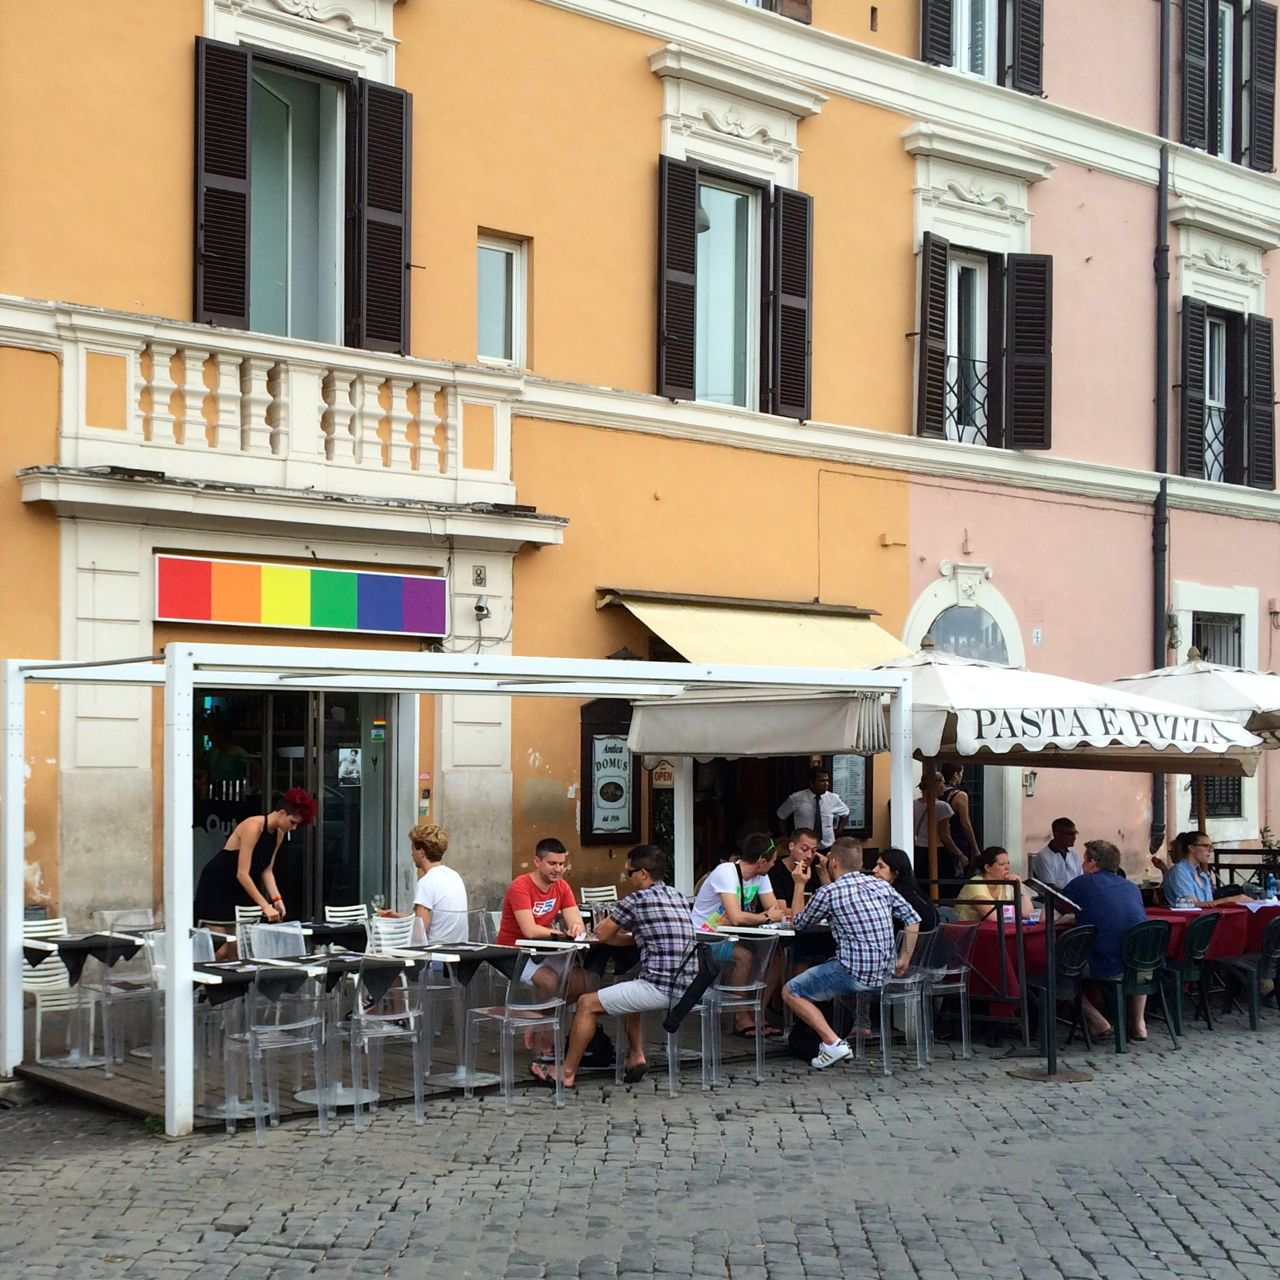 san giovanni in alterano - one of rome's most gay-friendly streets